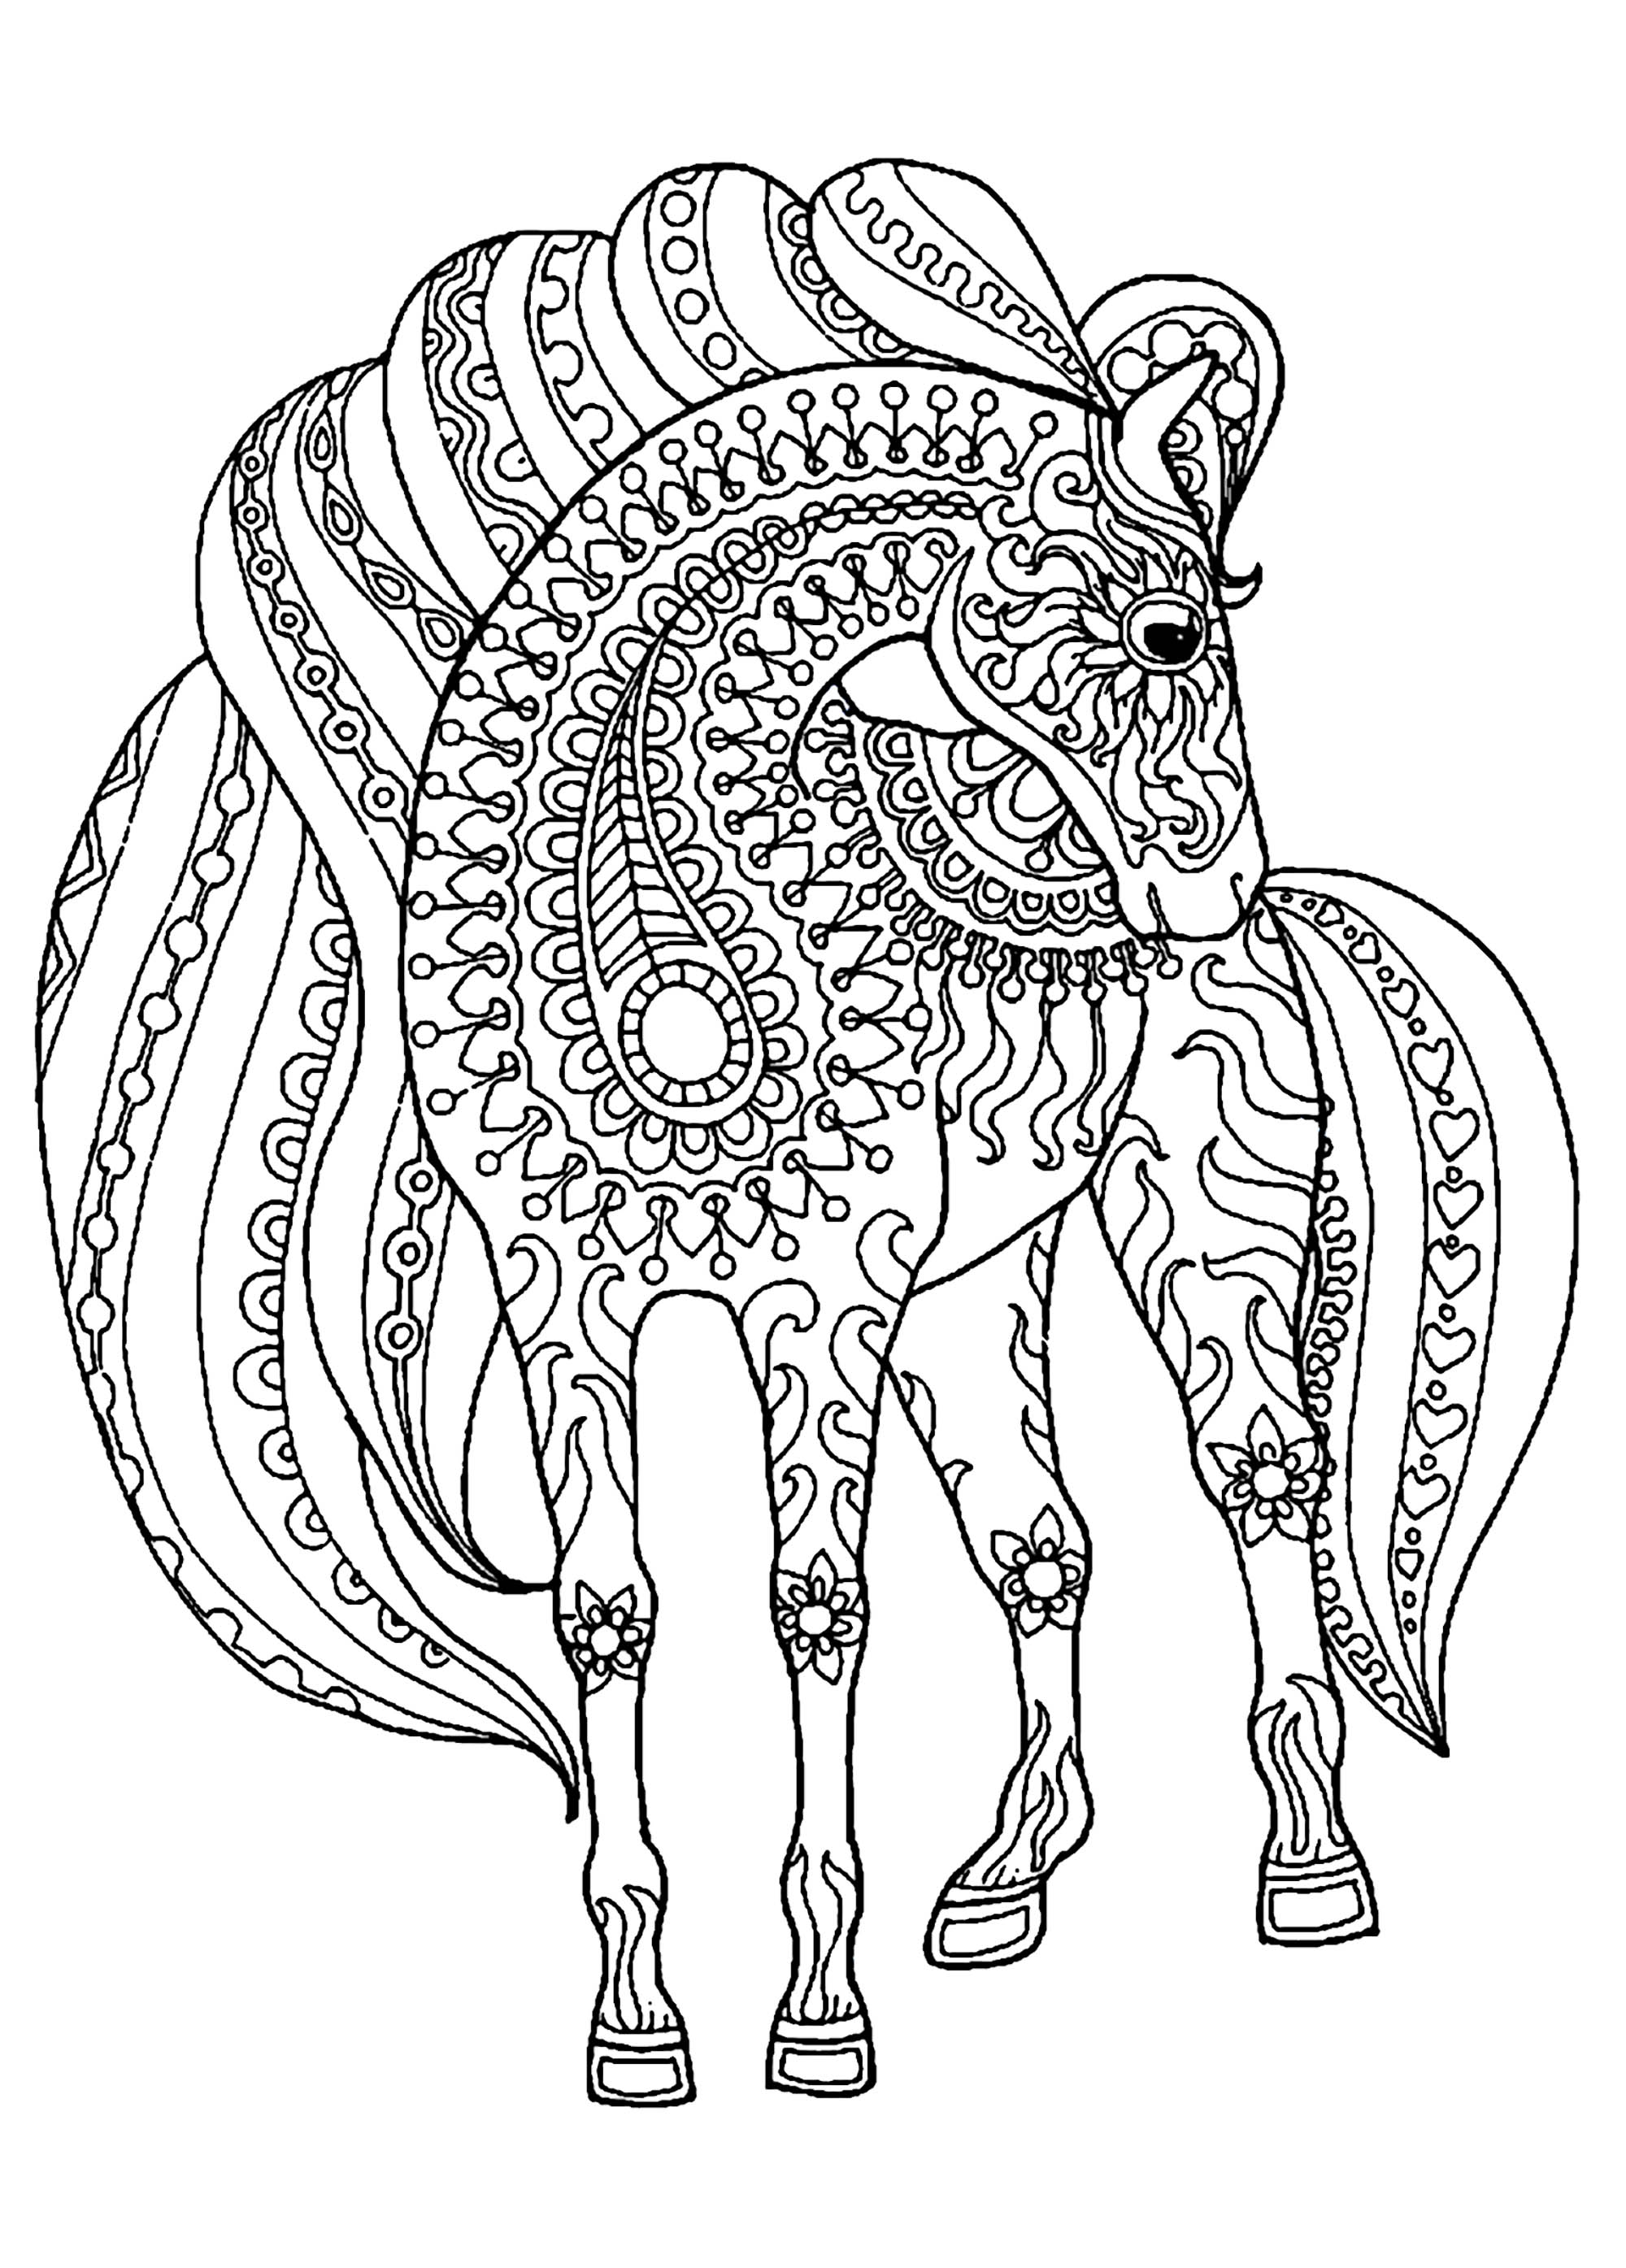 horse zentangle coloring pages adult anti stress horse zentangle animal coloring pages horse zentangle pages coloring